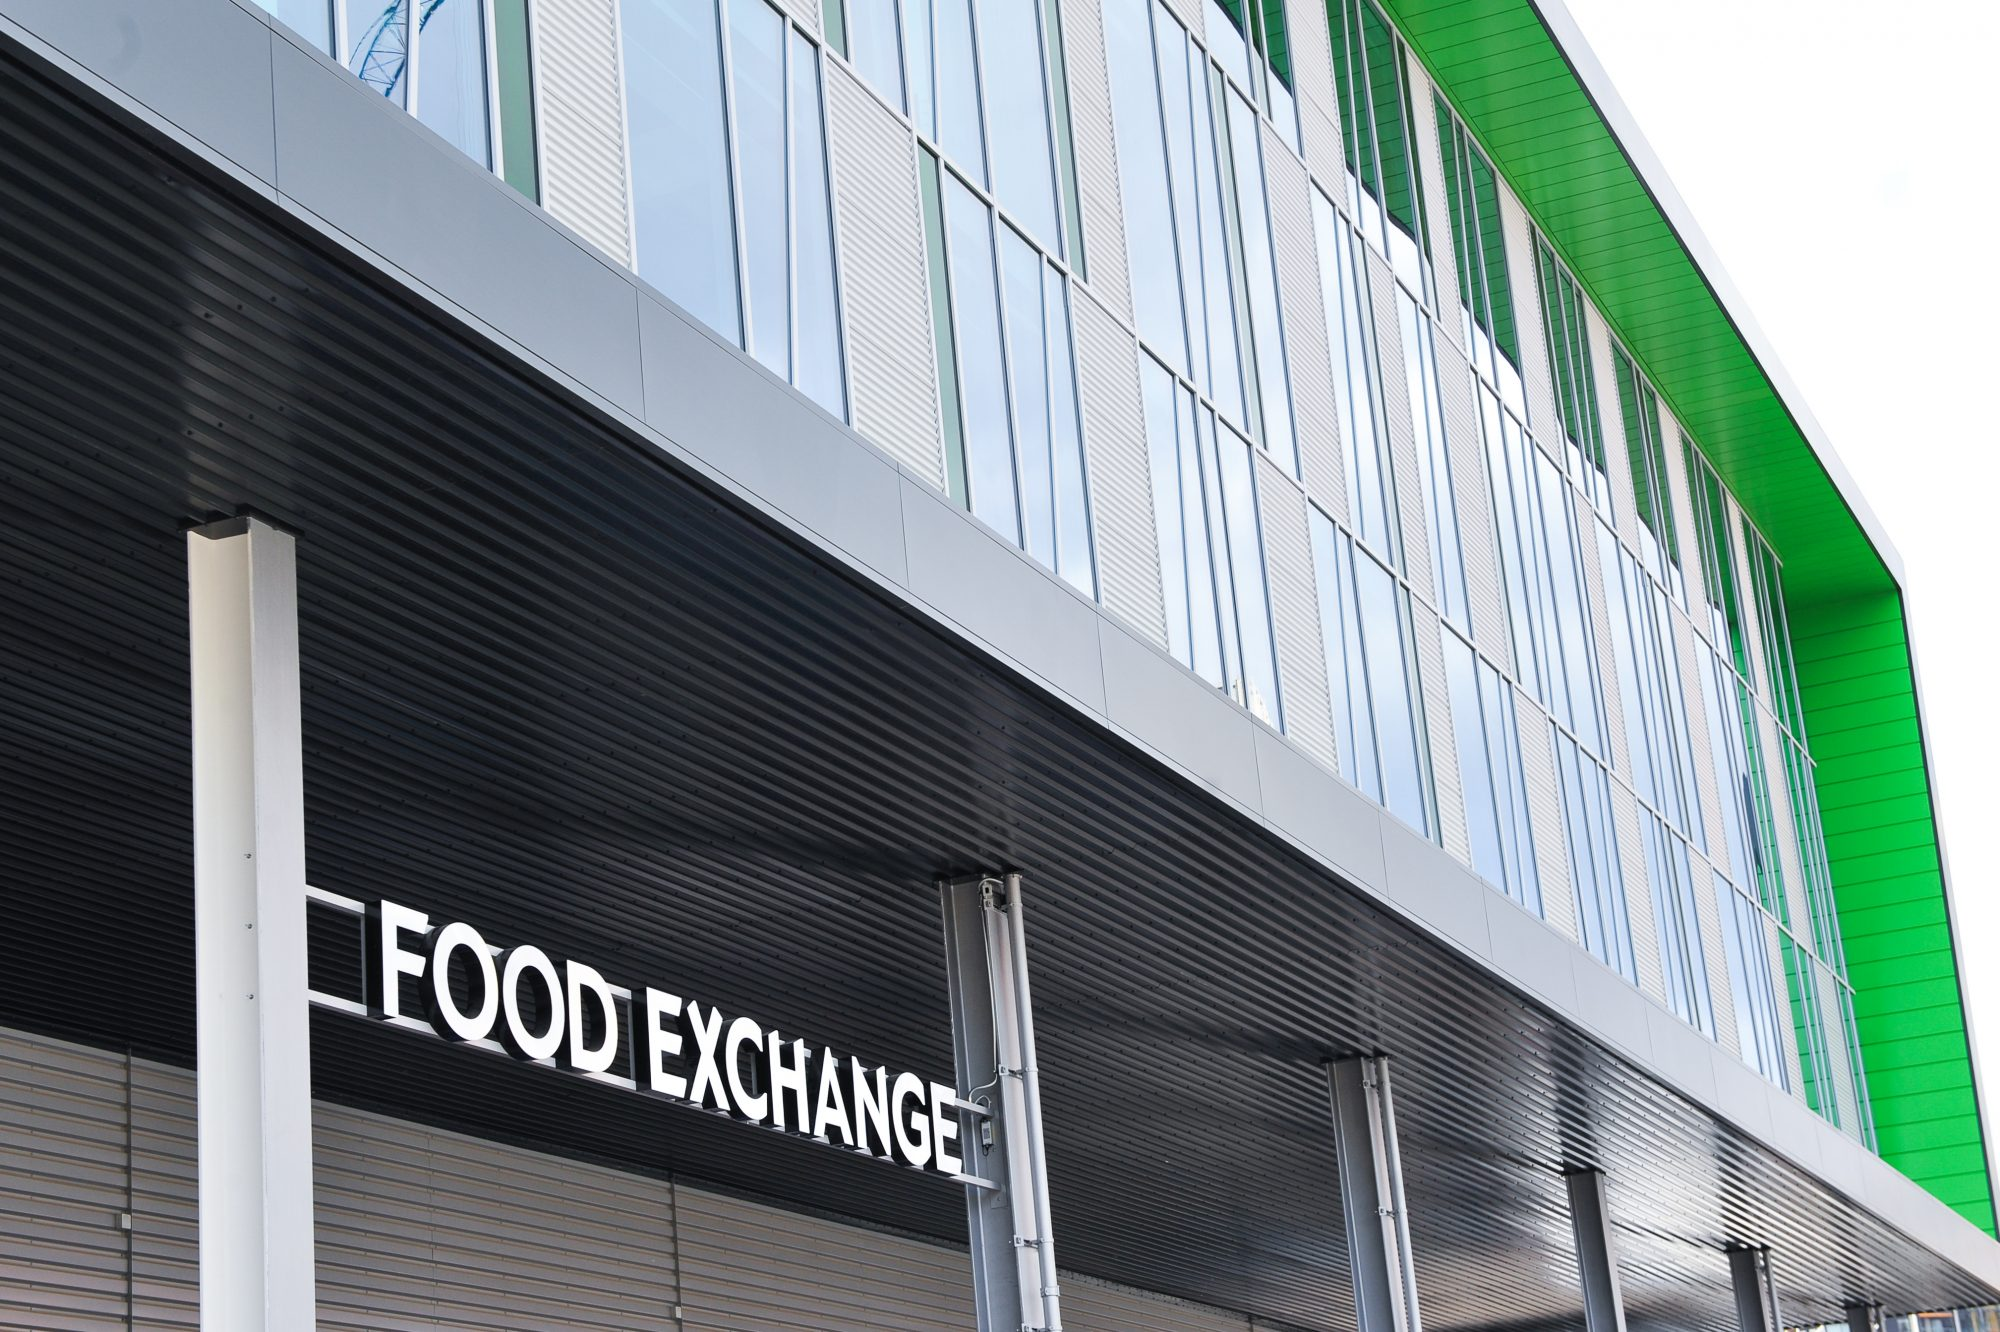 Food Exchange 10